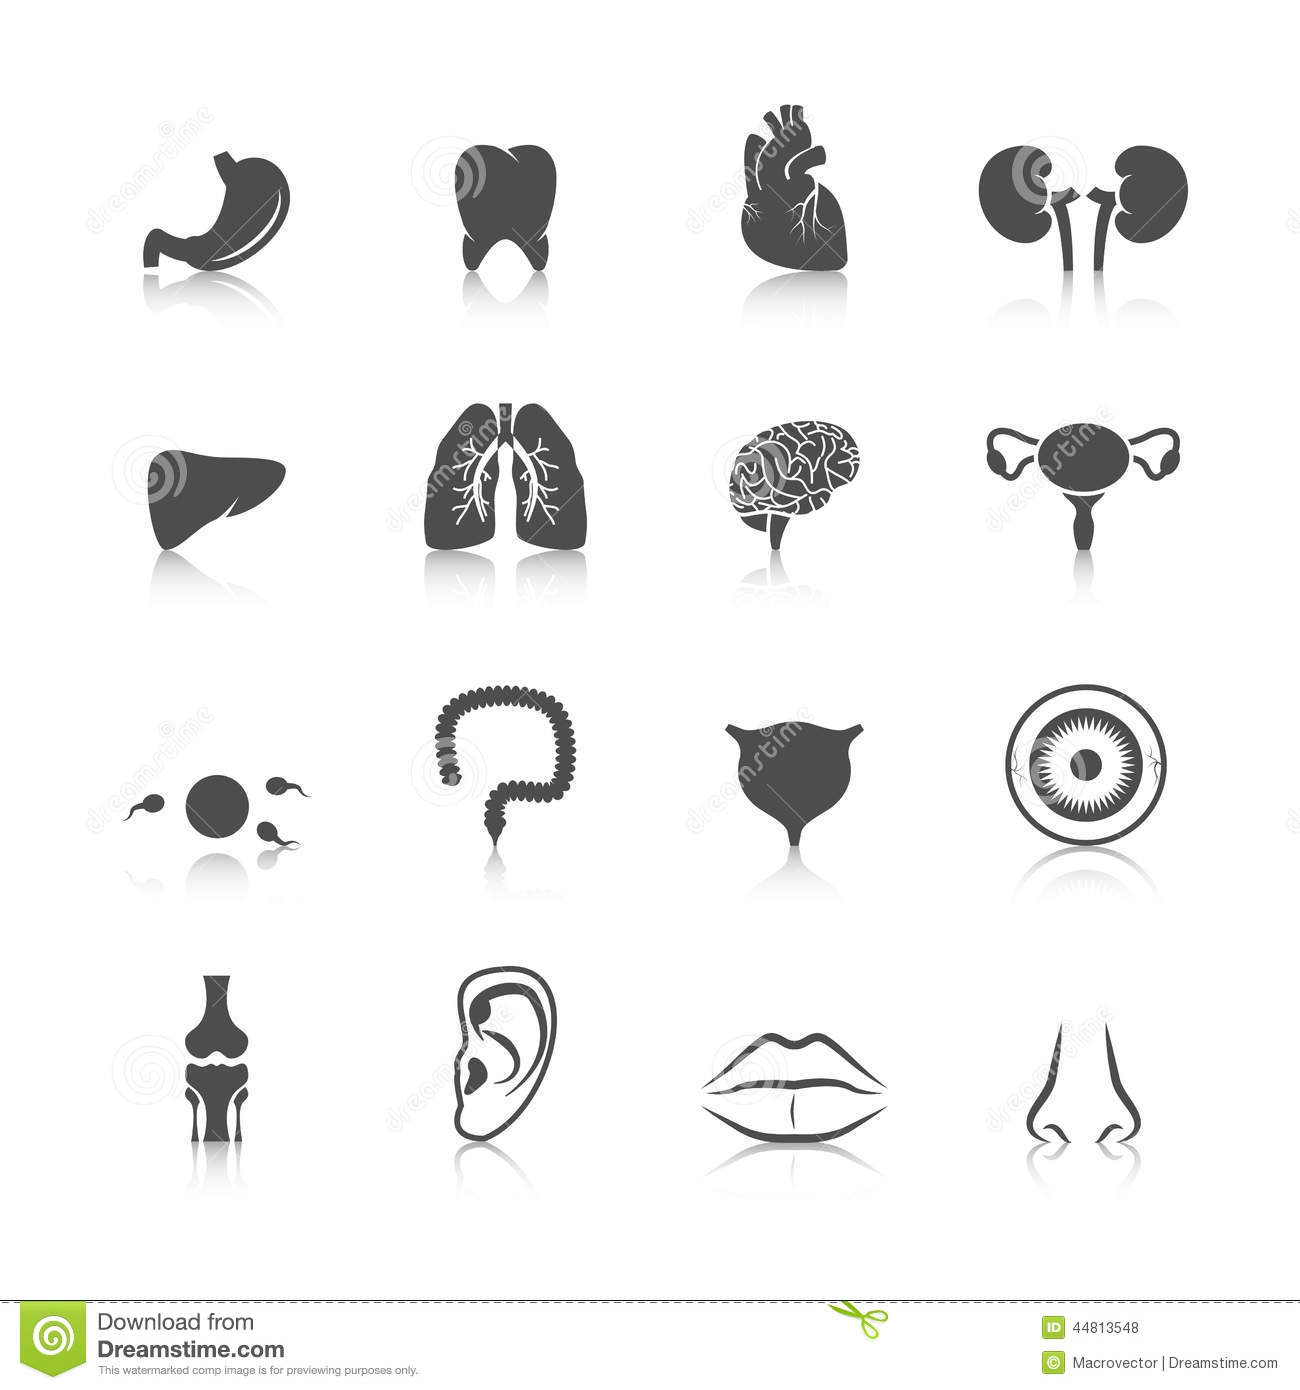 Human Internal Organs Black Icons Set Vector Illustration